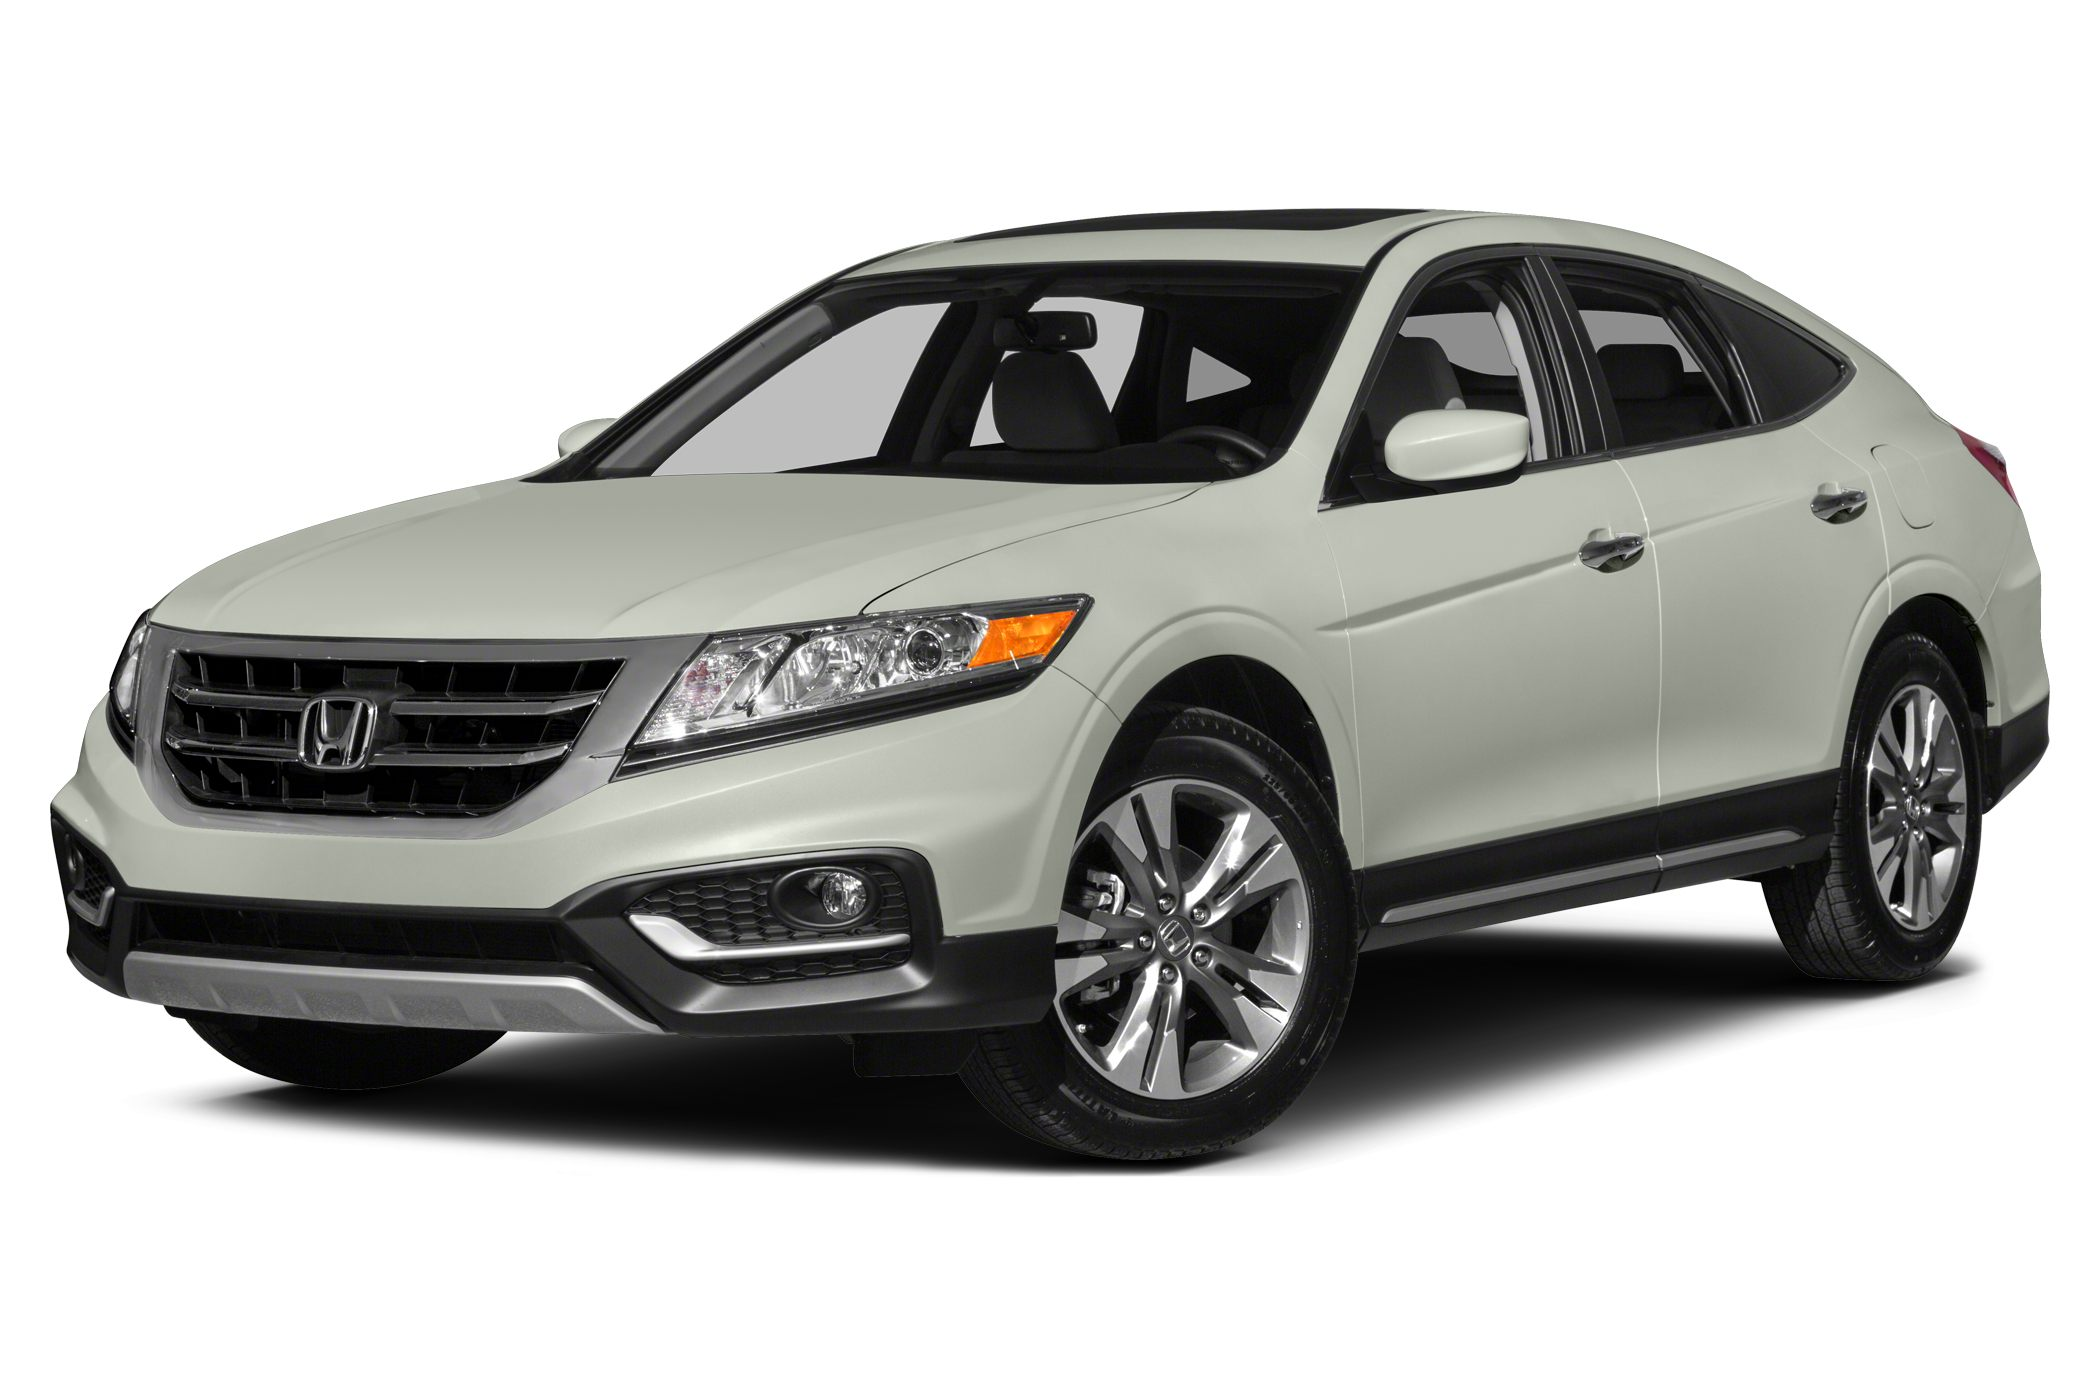 2013 Honda Crosstour Styles Amp Features Highlights